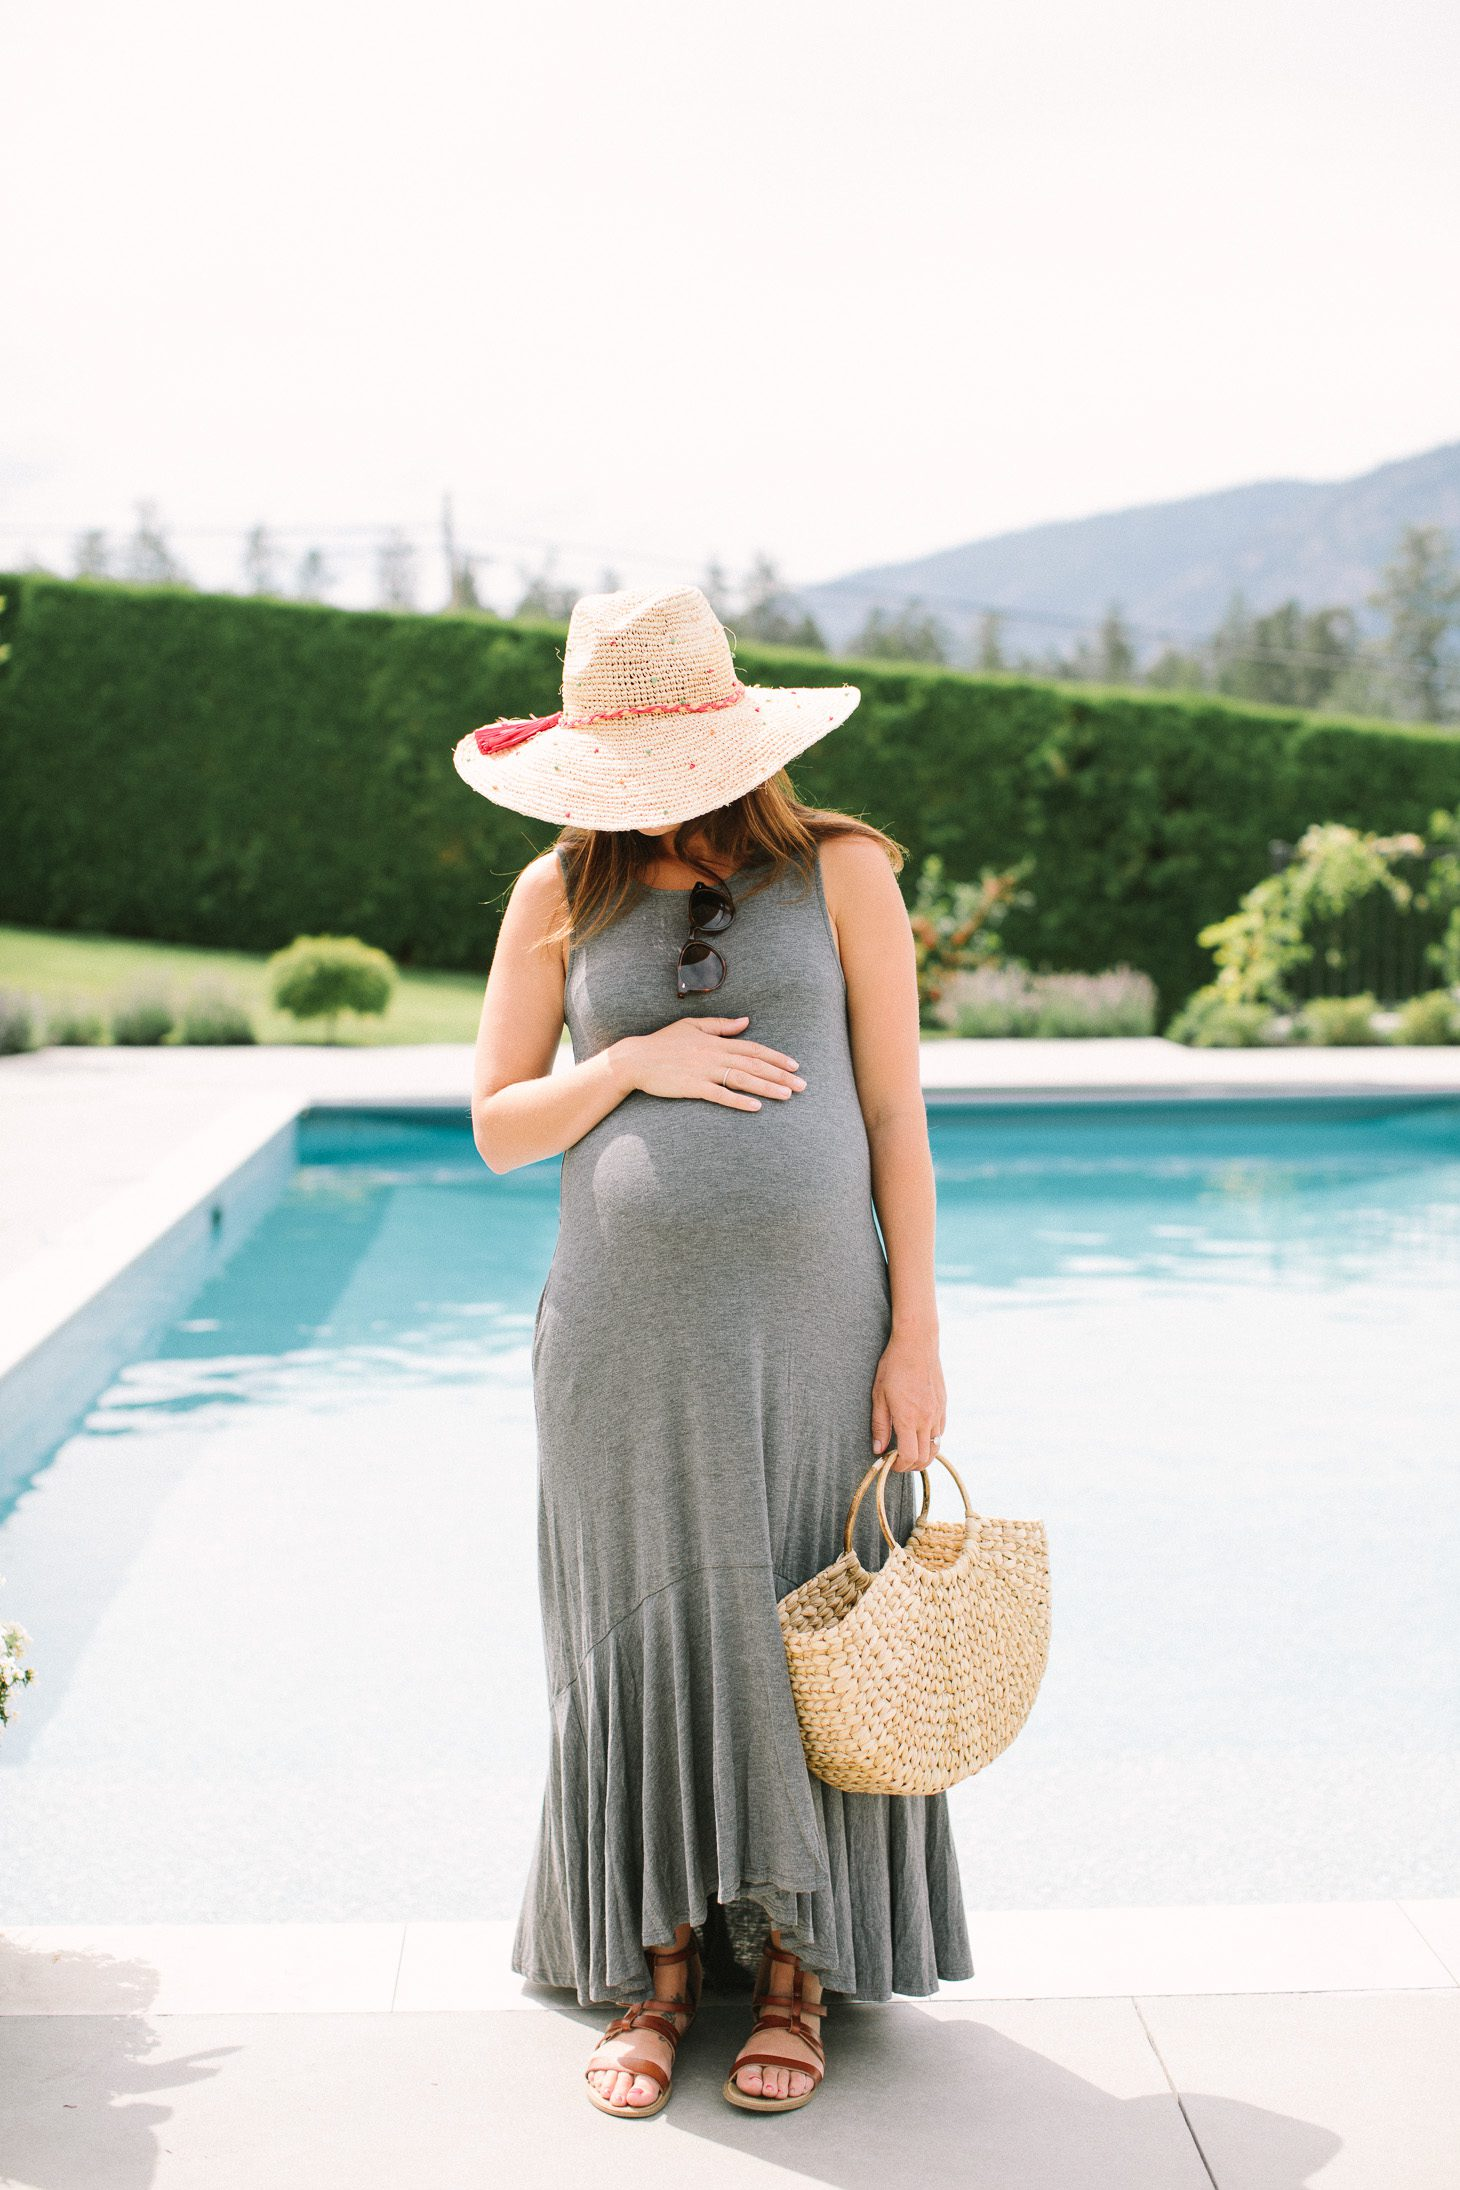 Jillian Harris The Dress I Want to Give Birth In